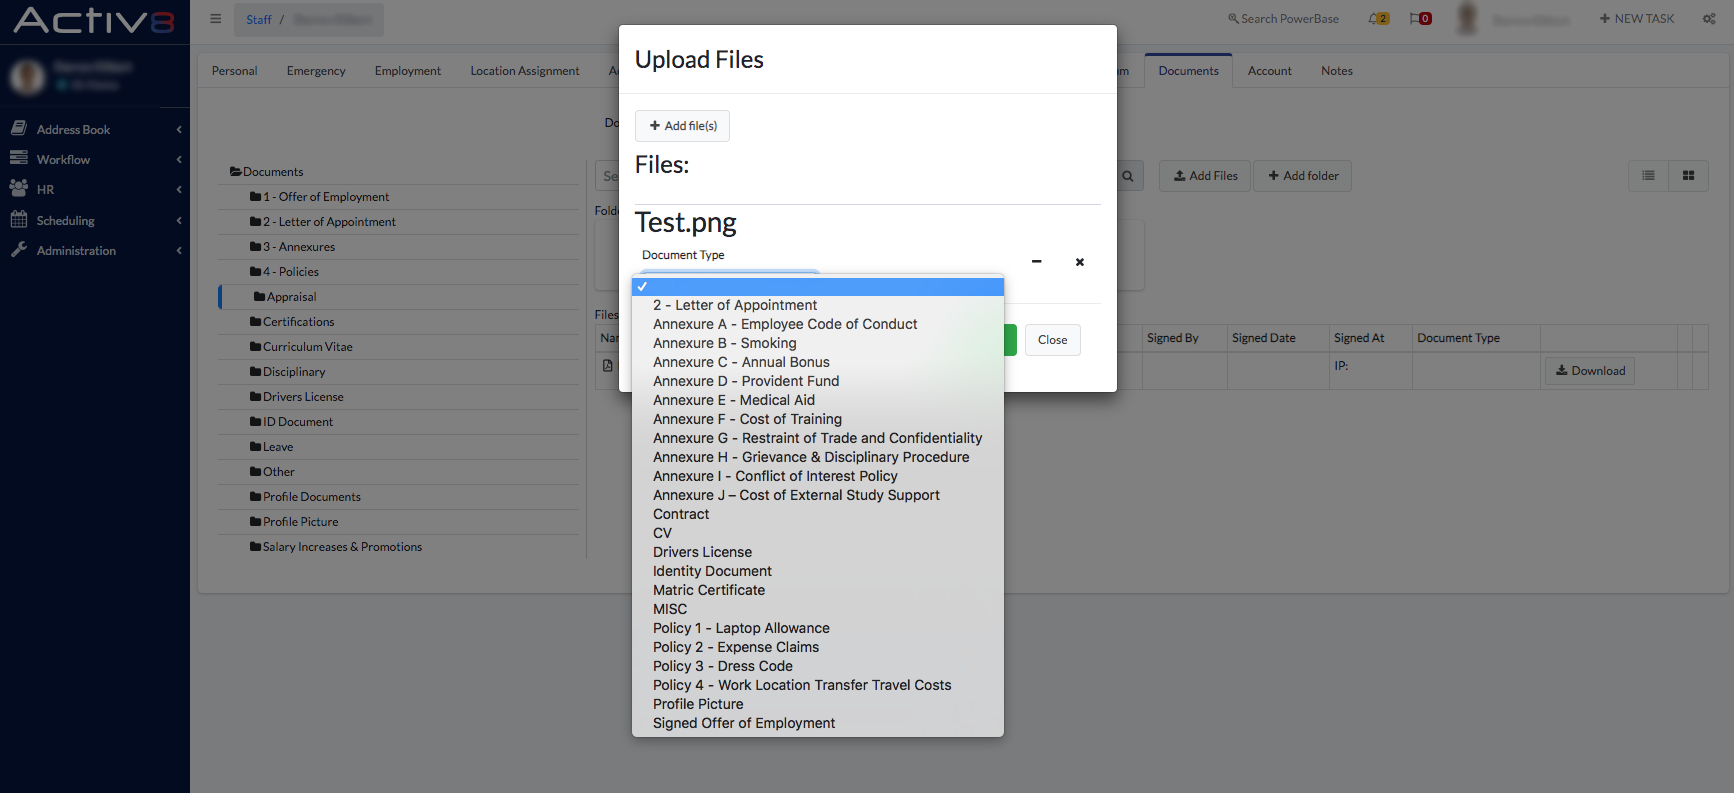 Upload Files and Document Type - Activ8